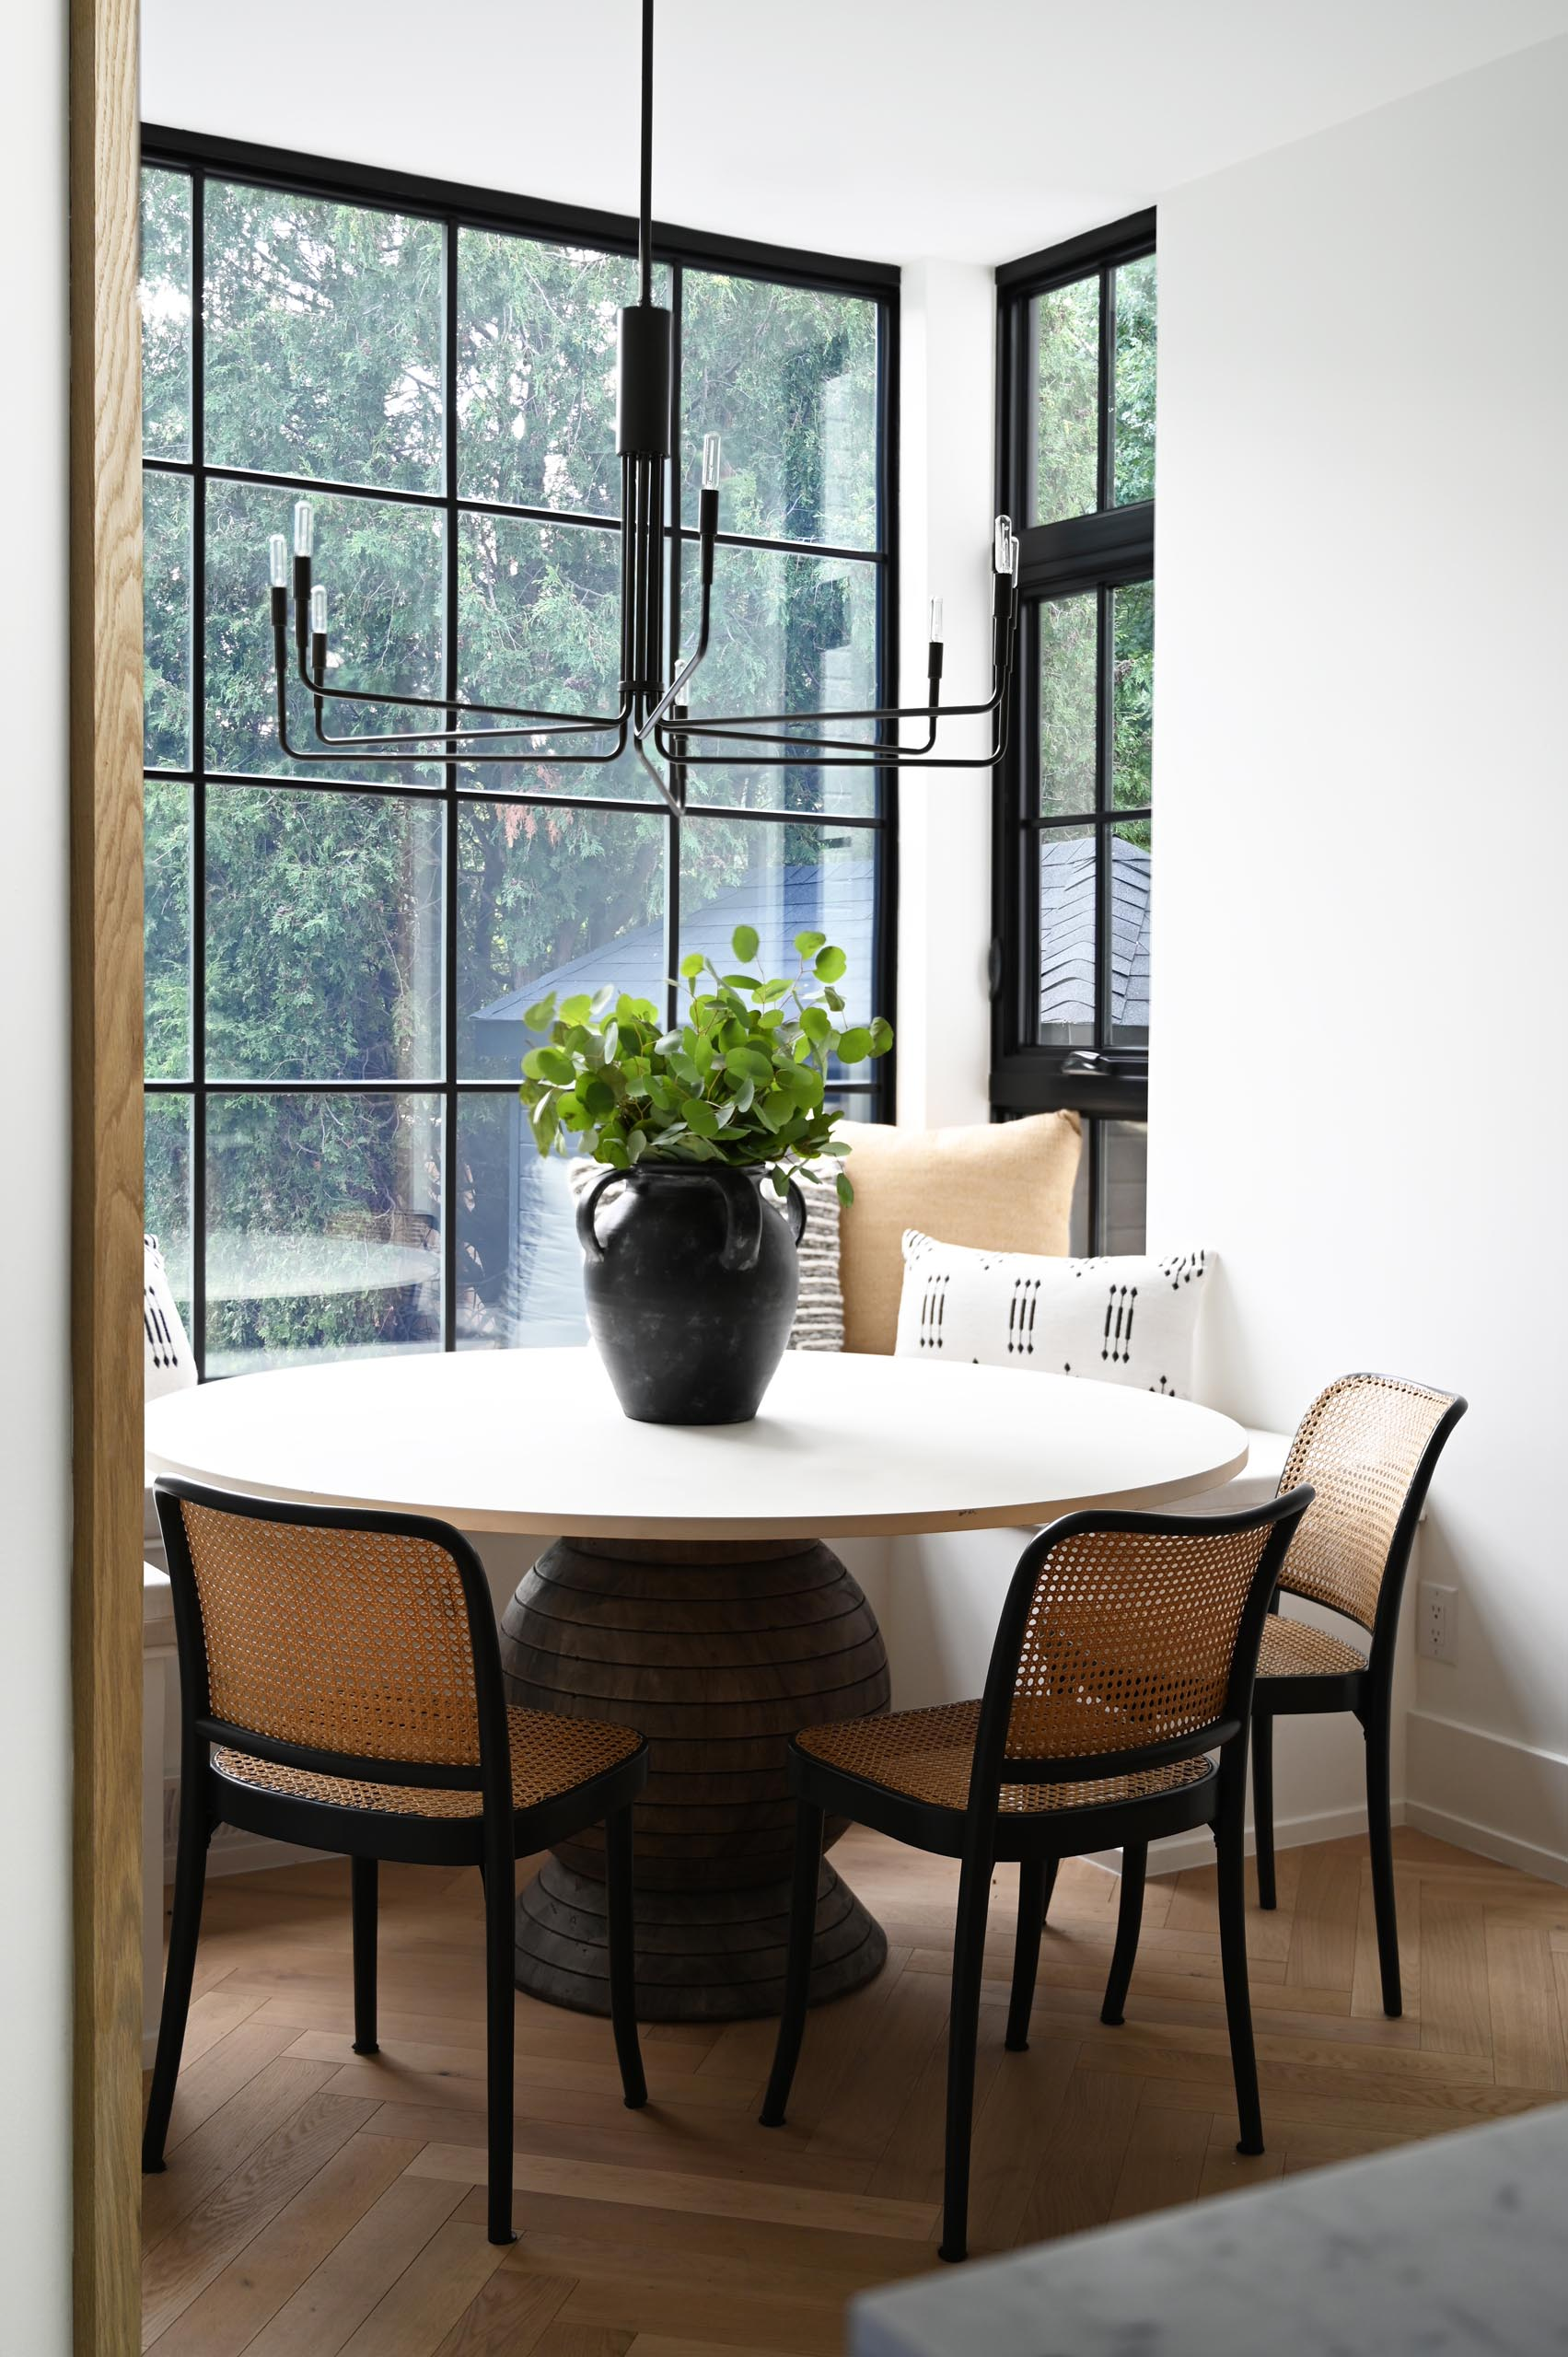 In this modern breakfast nook, the black window frames match the pendant light and the chair frames.